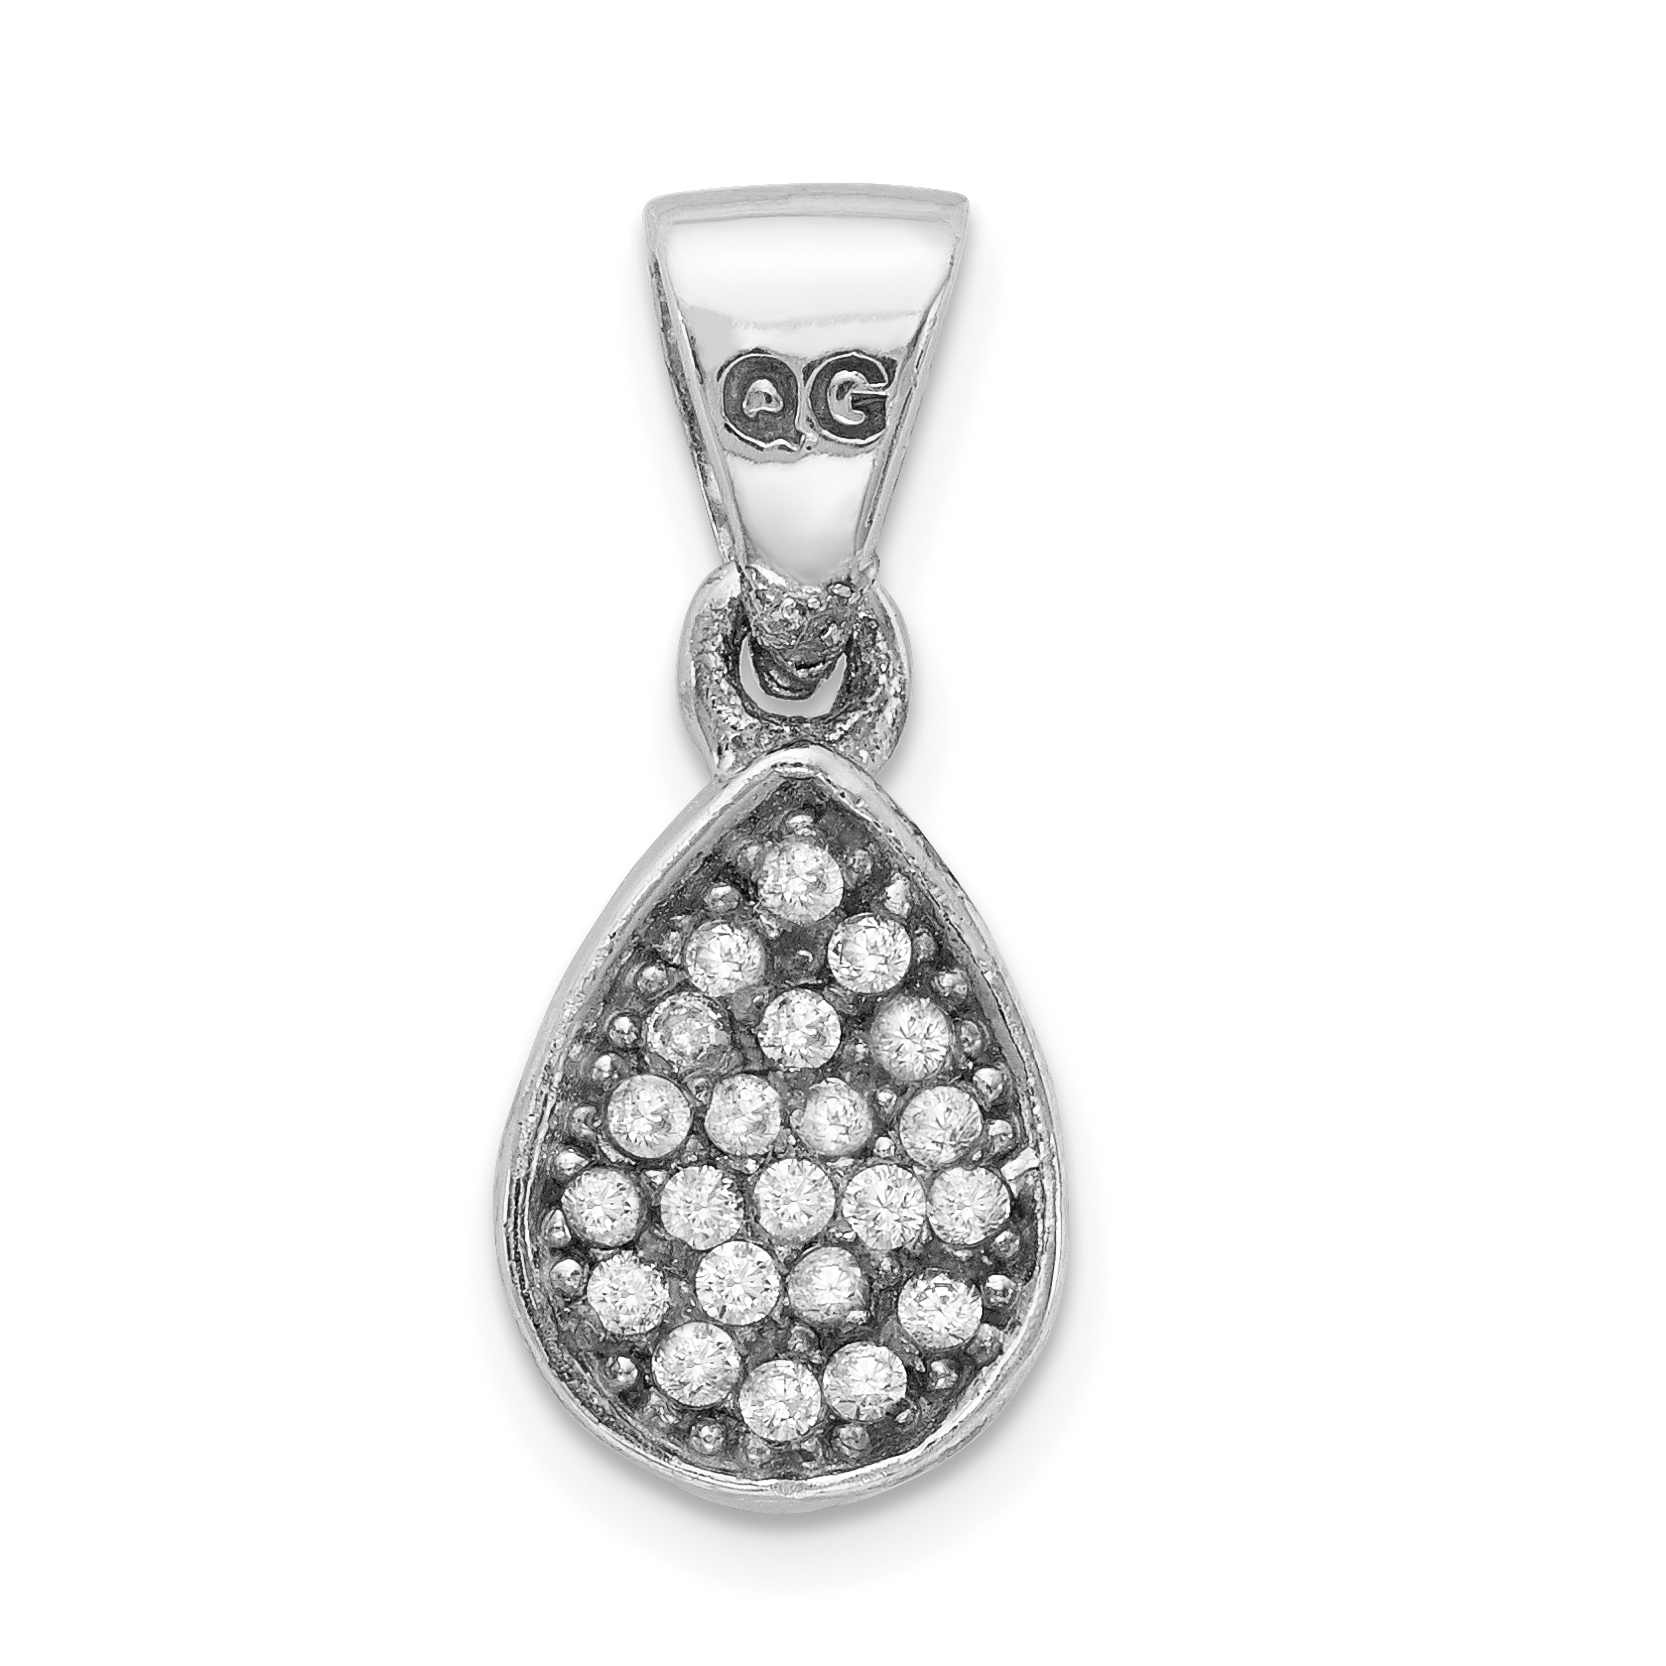 925 Sterling Silver Cubic Zirconia Cz Teardrop Pendant Charm Necklace Fine Jewelry Gifts For Women For Her - image 2 de 2